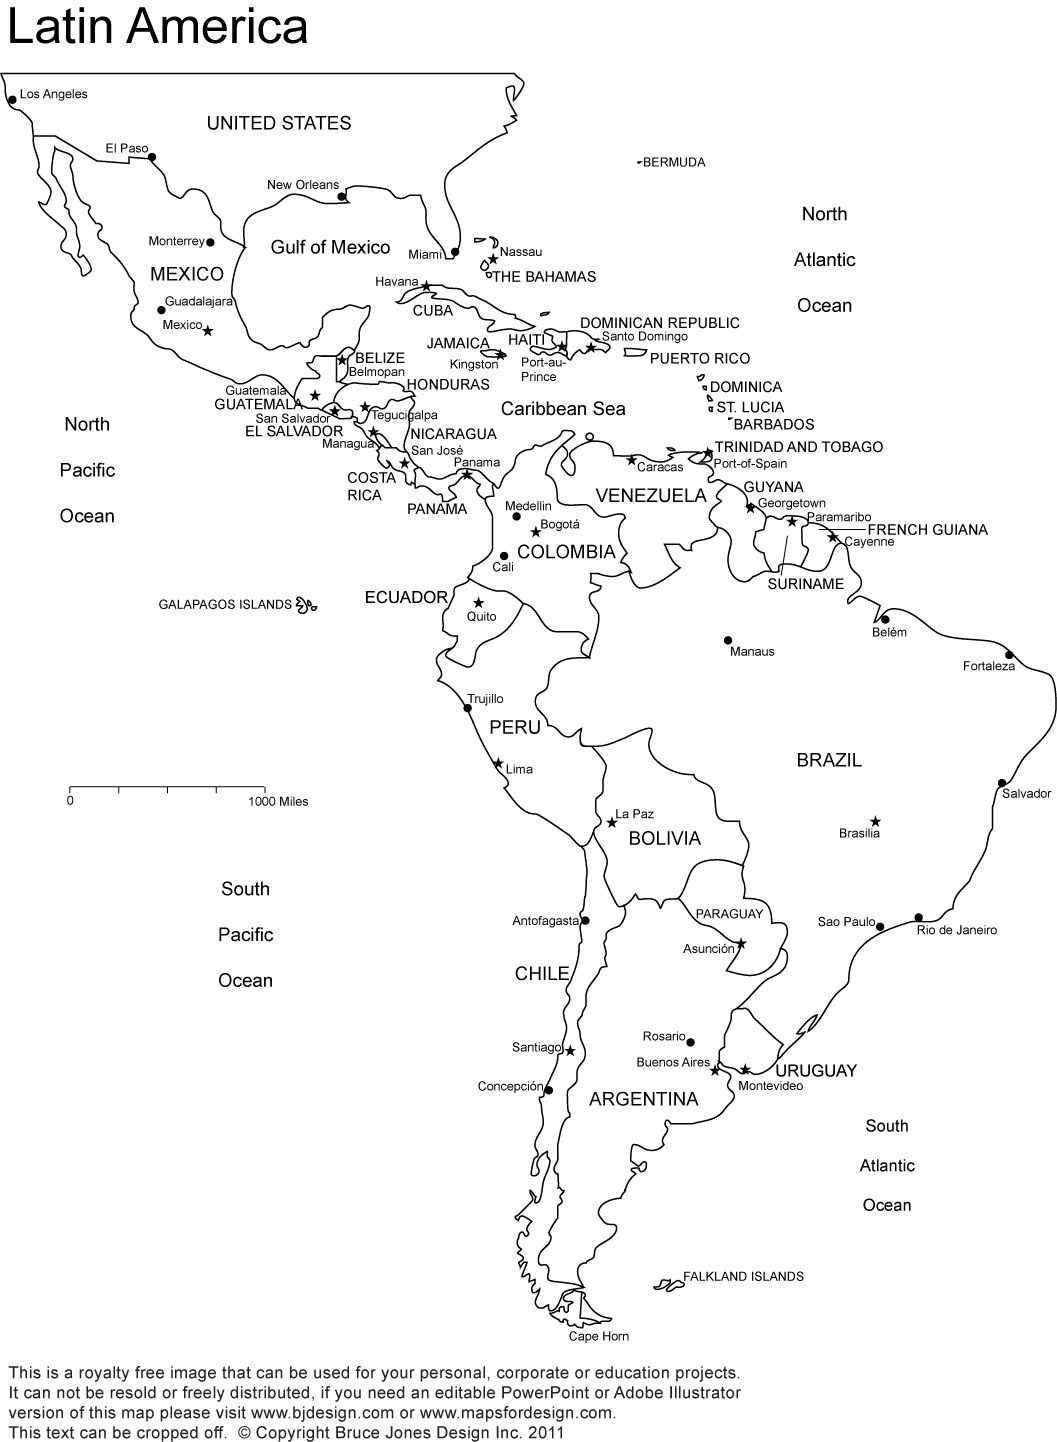 Latin America Printable Blank Map South America Brazil